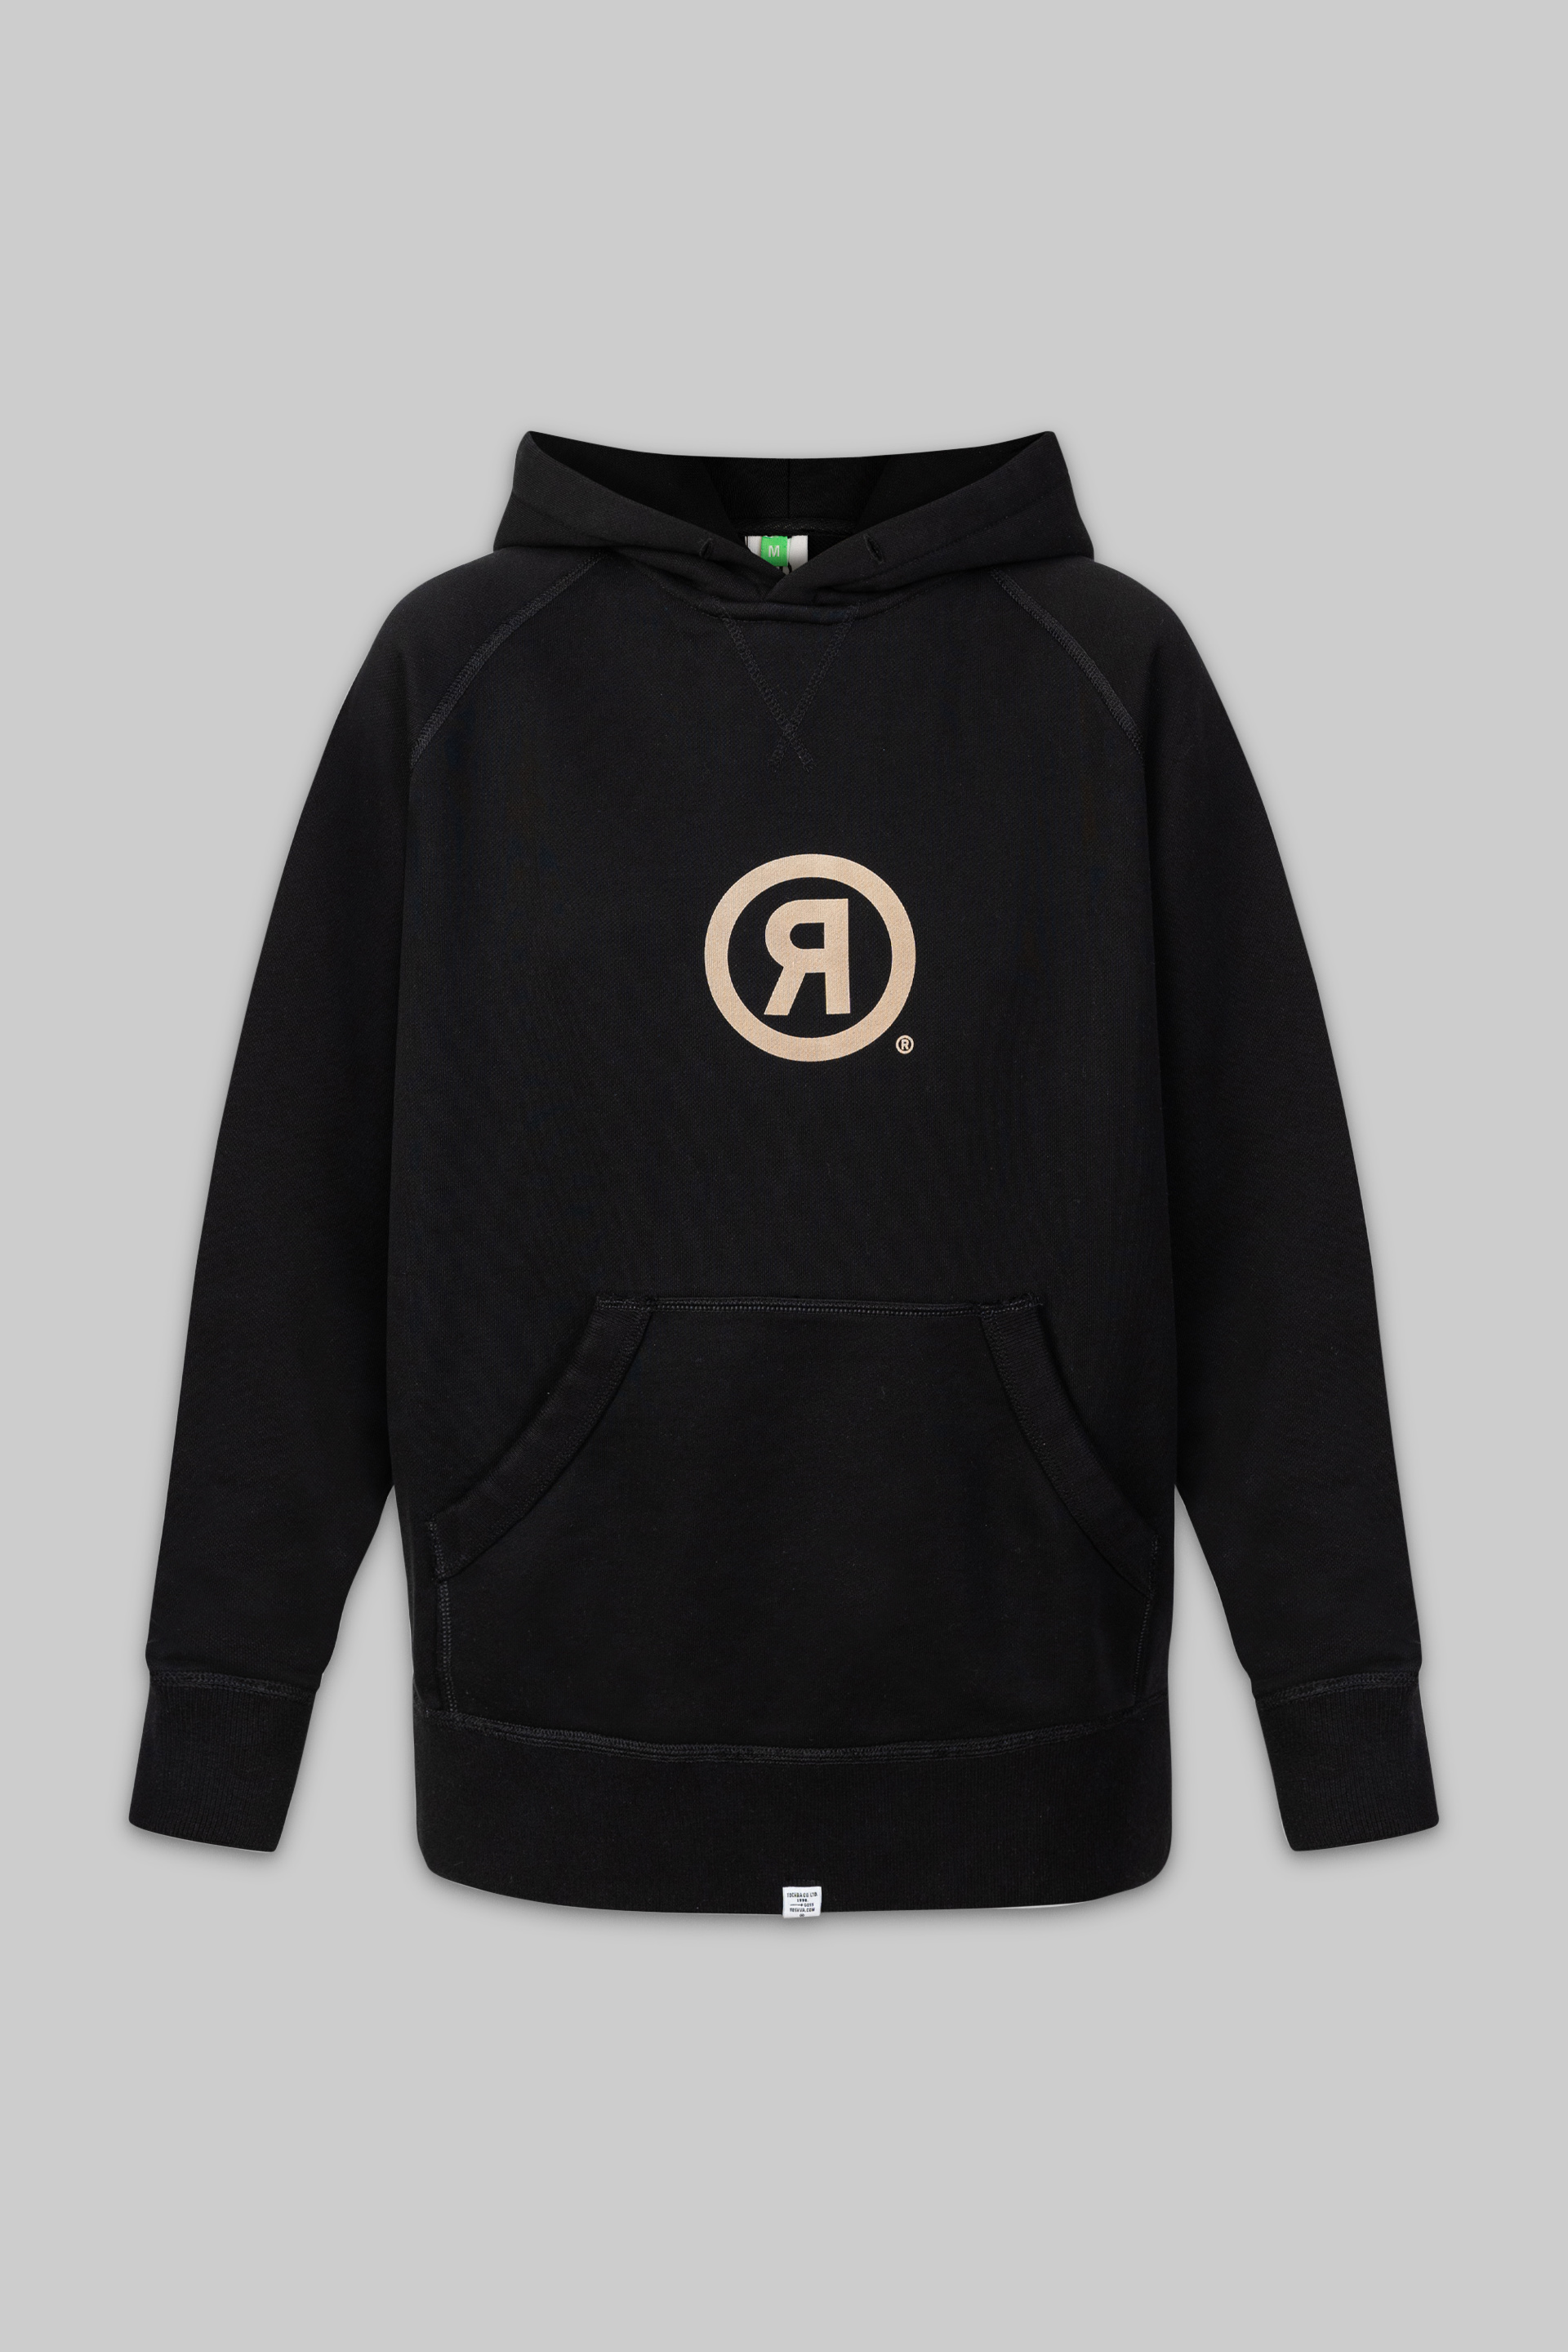 "Hoodie with brand logo ""Me"", photo 1"